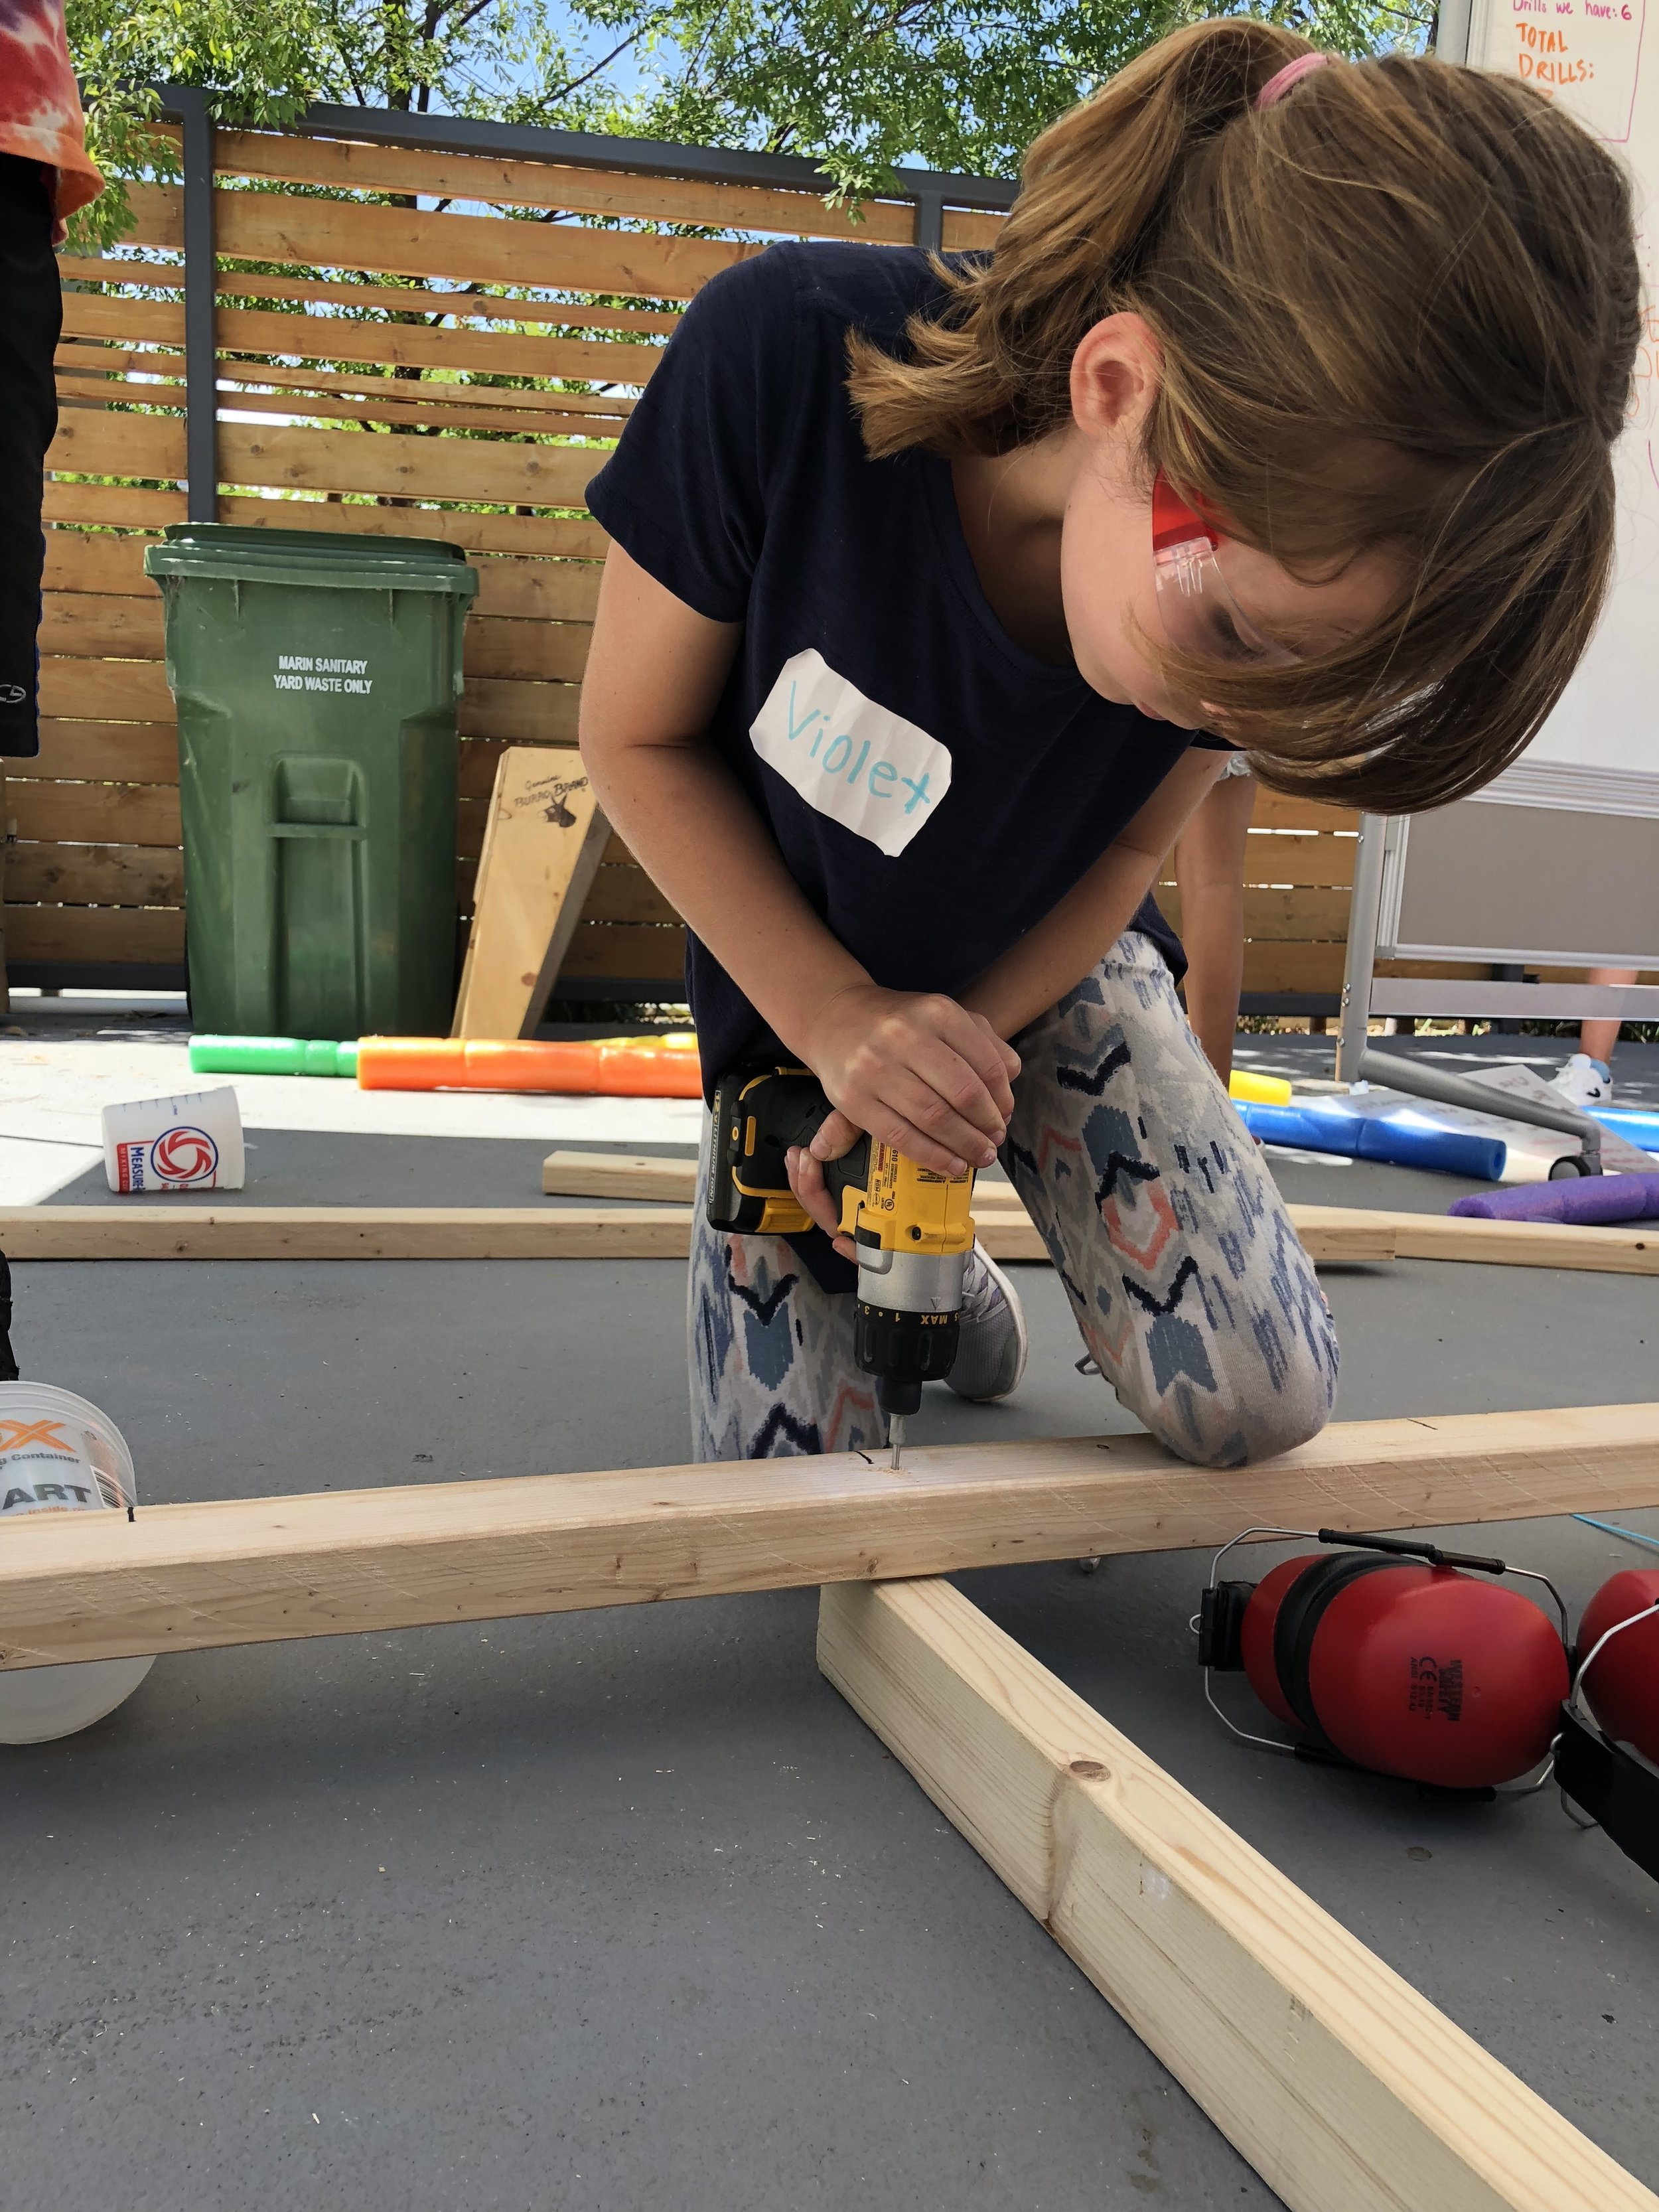 """During tool training, tinkerers learned to hold wood secure with a knee, foot, friend's hand, or clamp (which we refer to as a """"third hand"""")."""